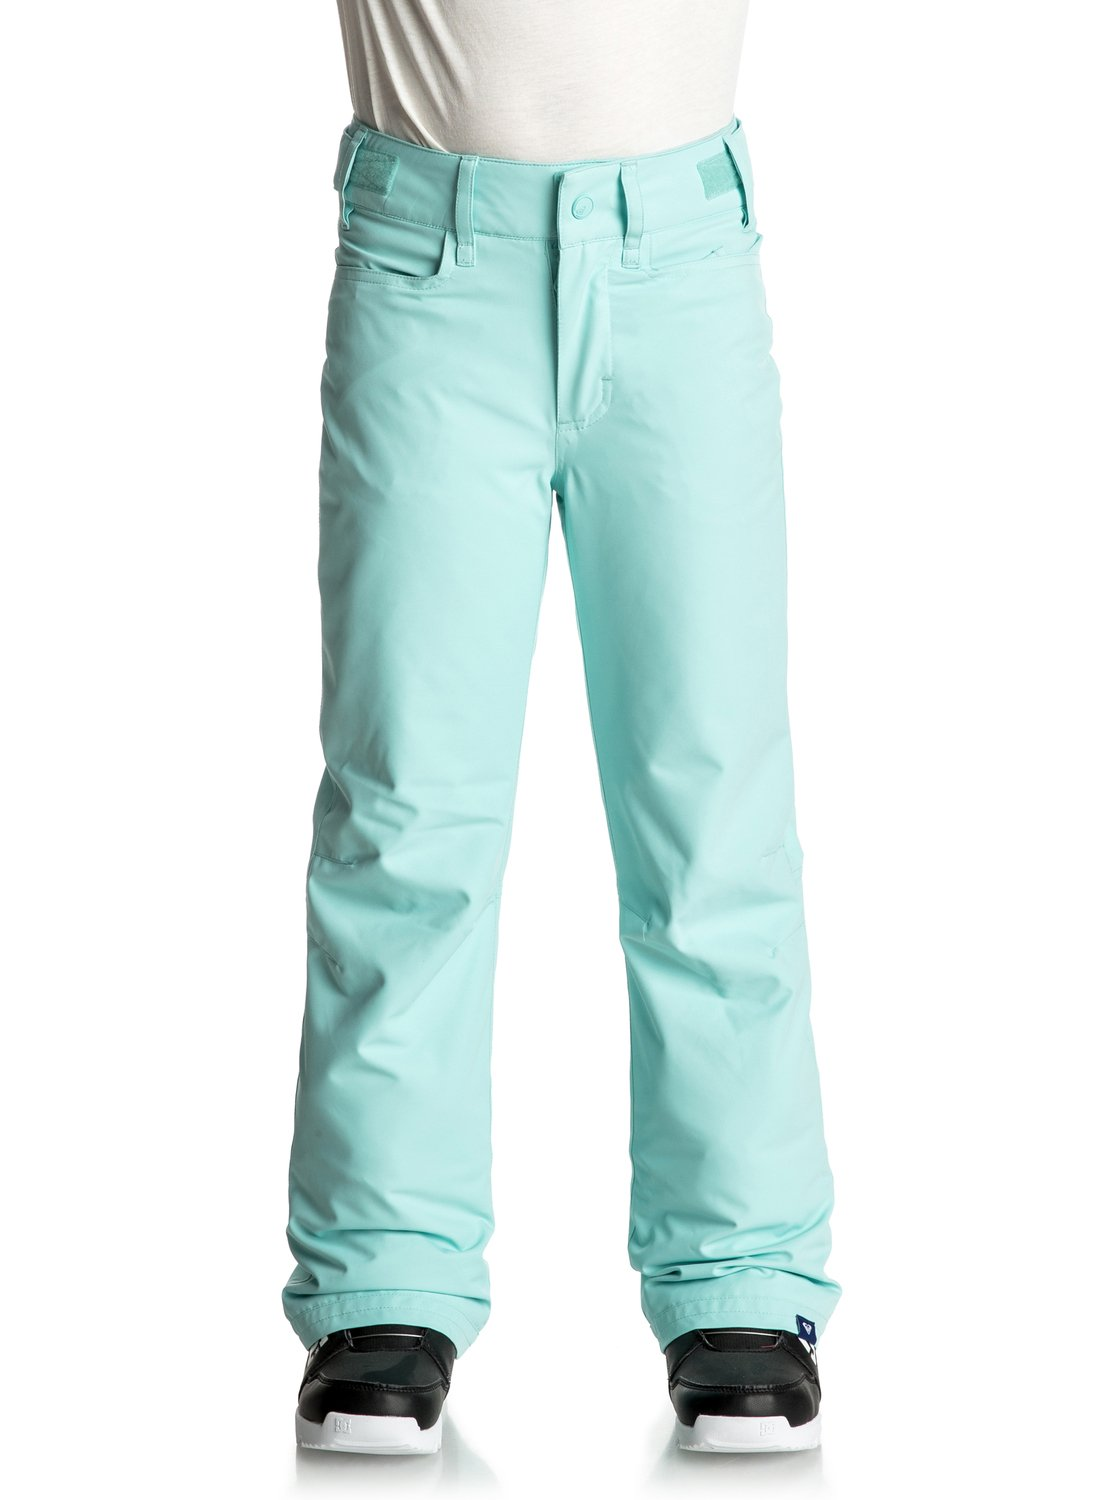 Backyard - Pantalon de snow pour Fille - Roxy